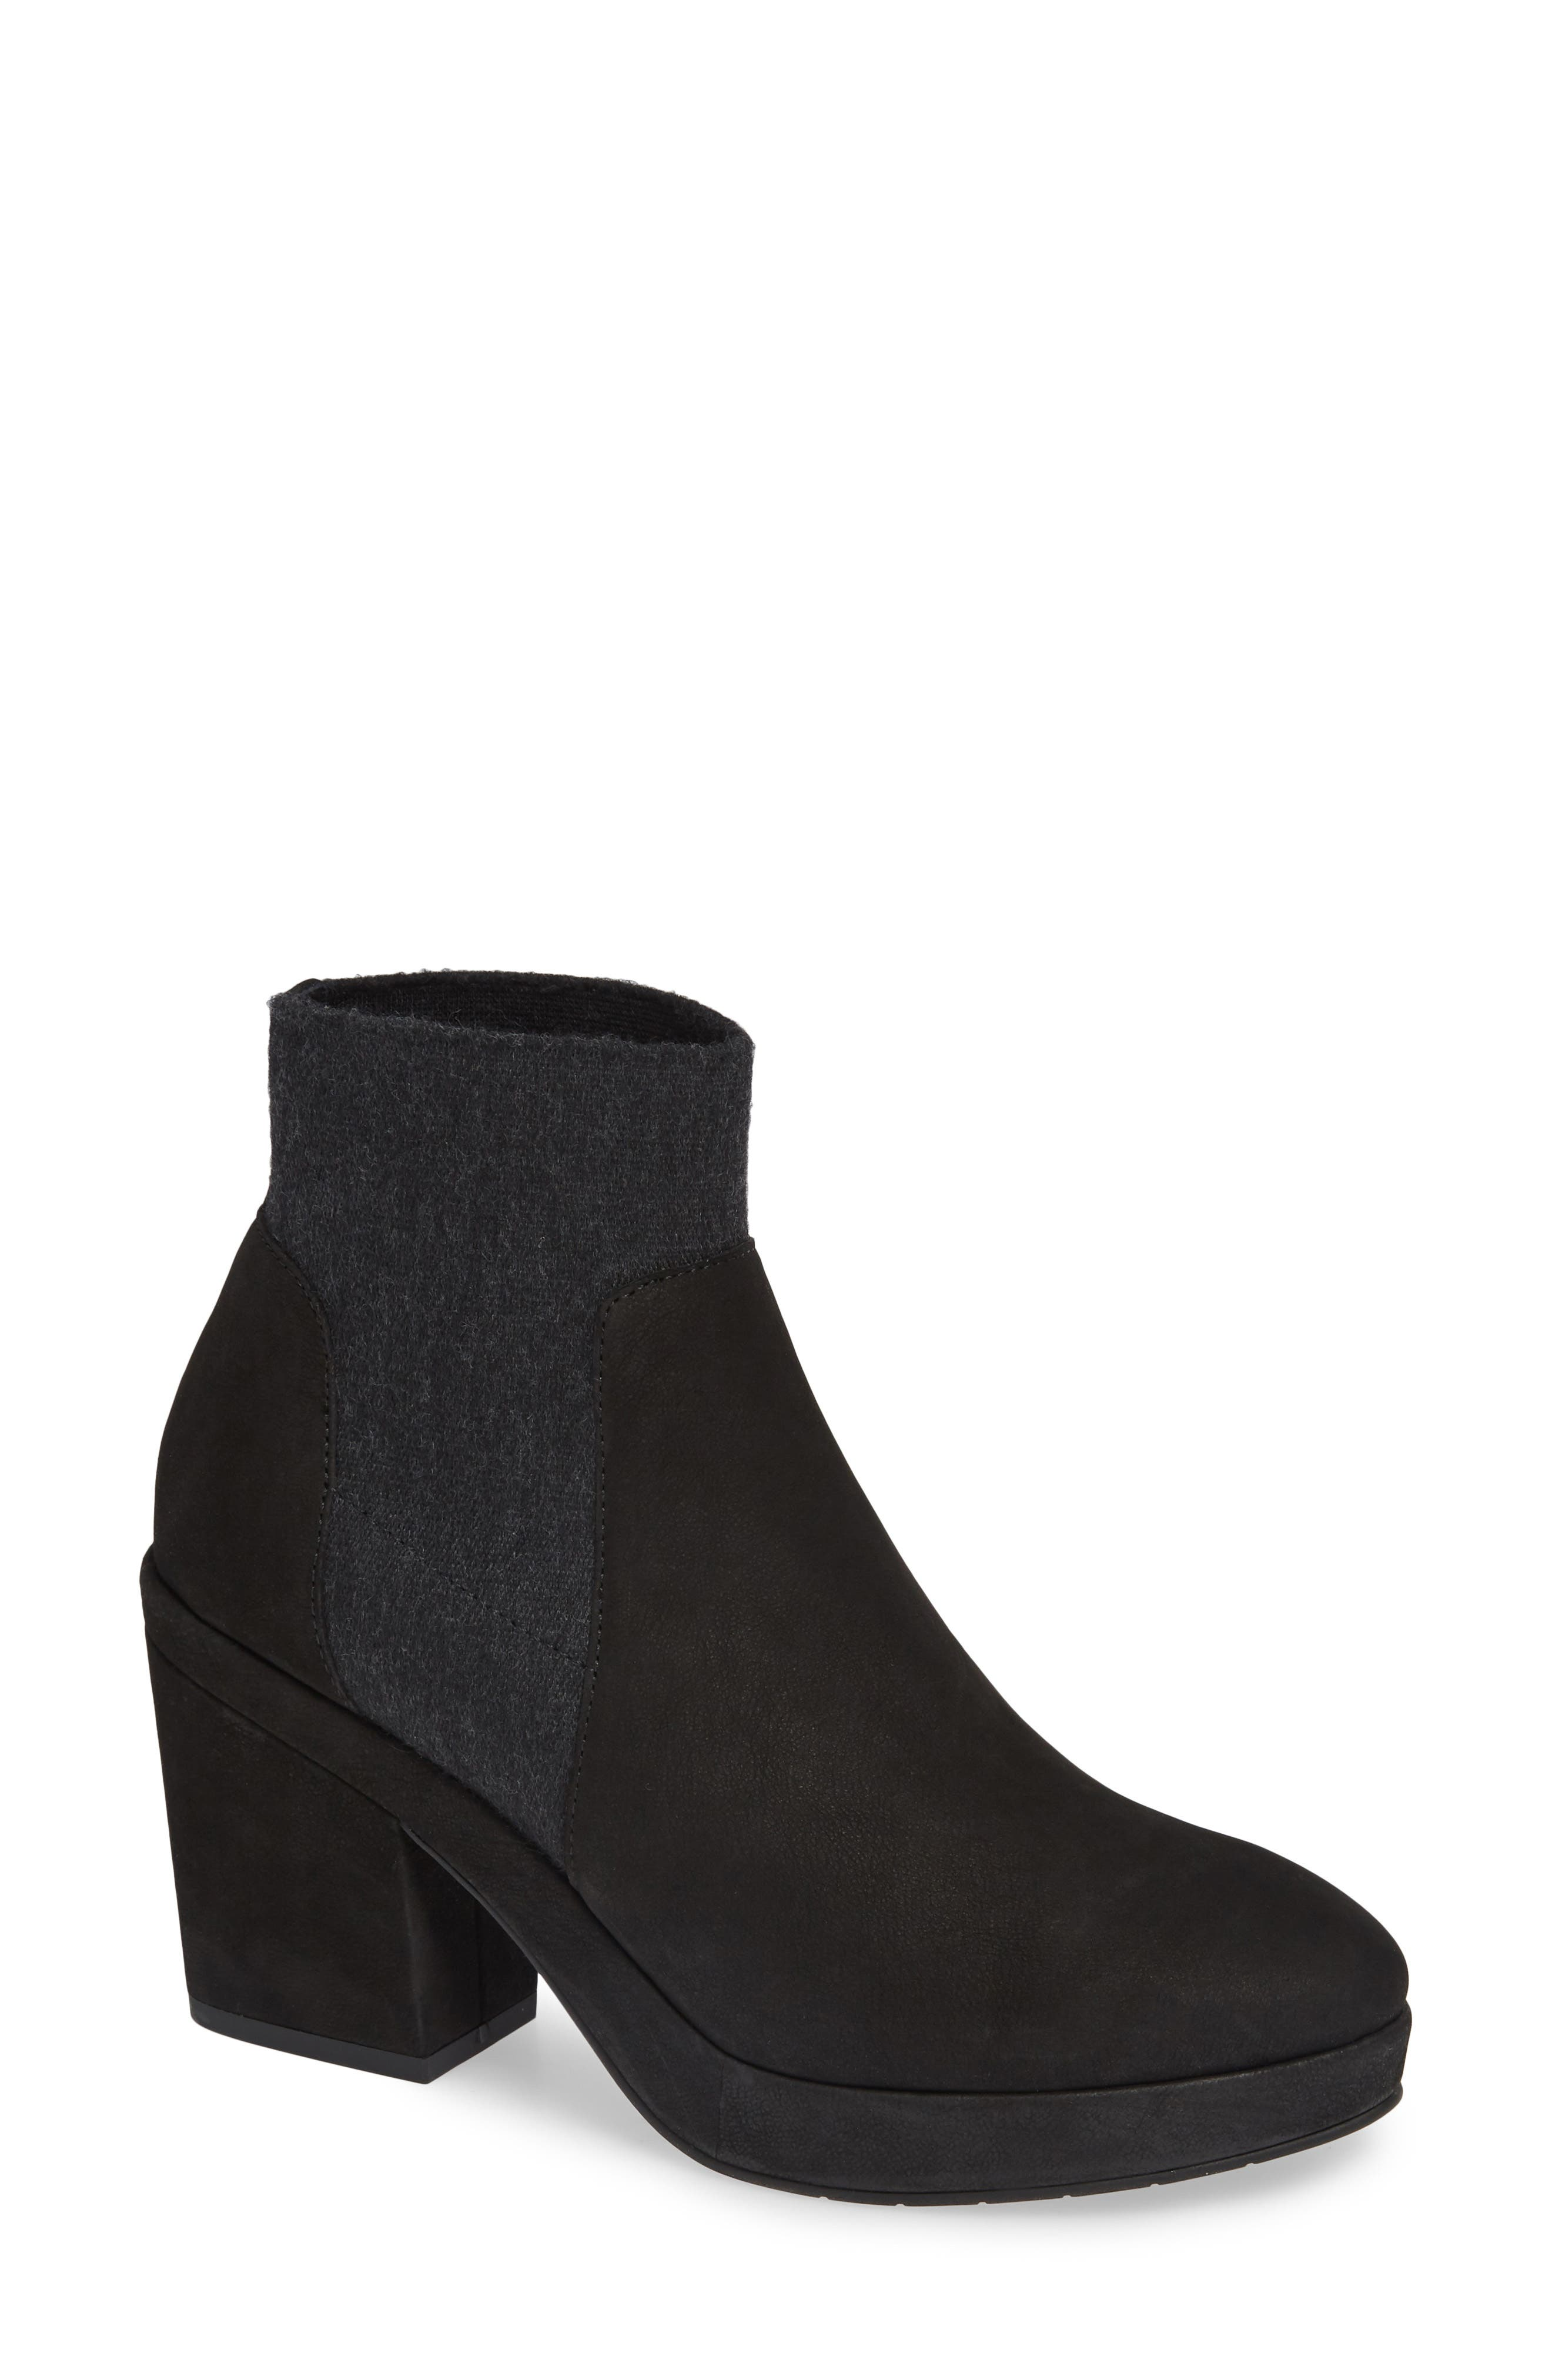 Eileen Fisher Later Bootie